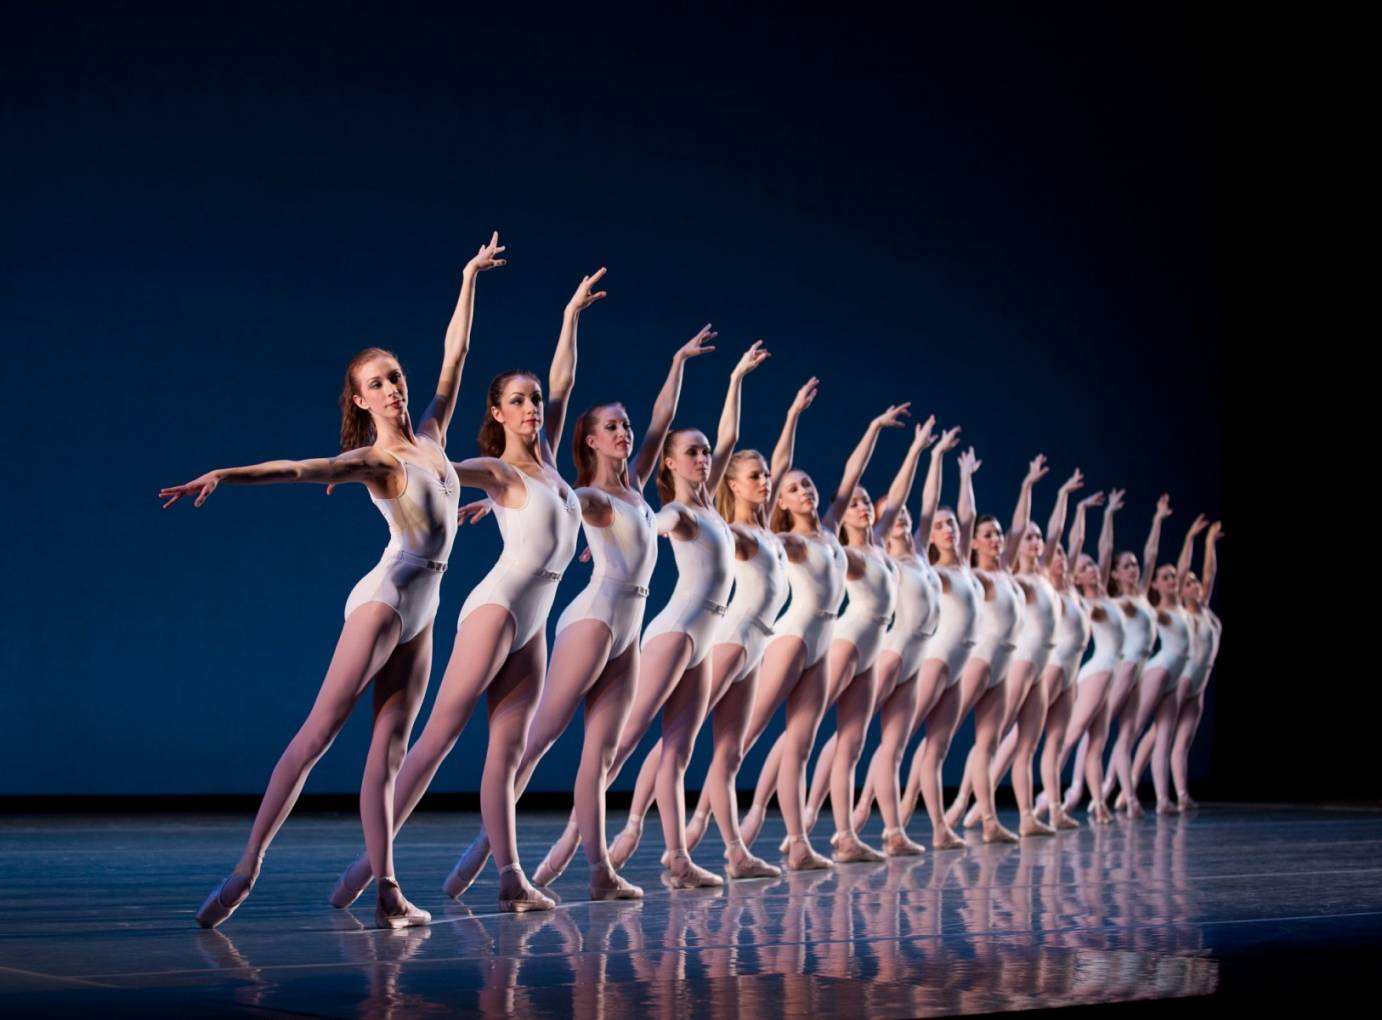 Symphony in 3 Movements AAAAA©The George Balanchine Trust. Photo by Rosalie OConnor